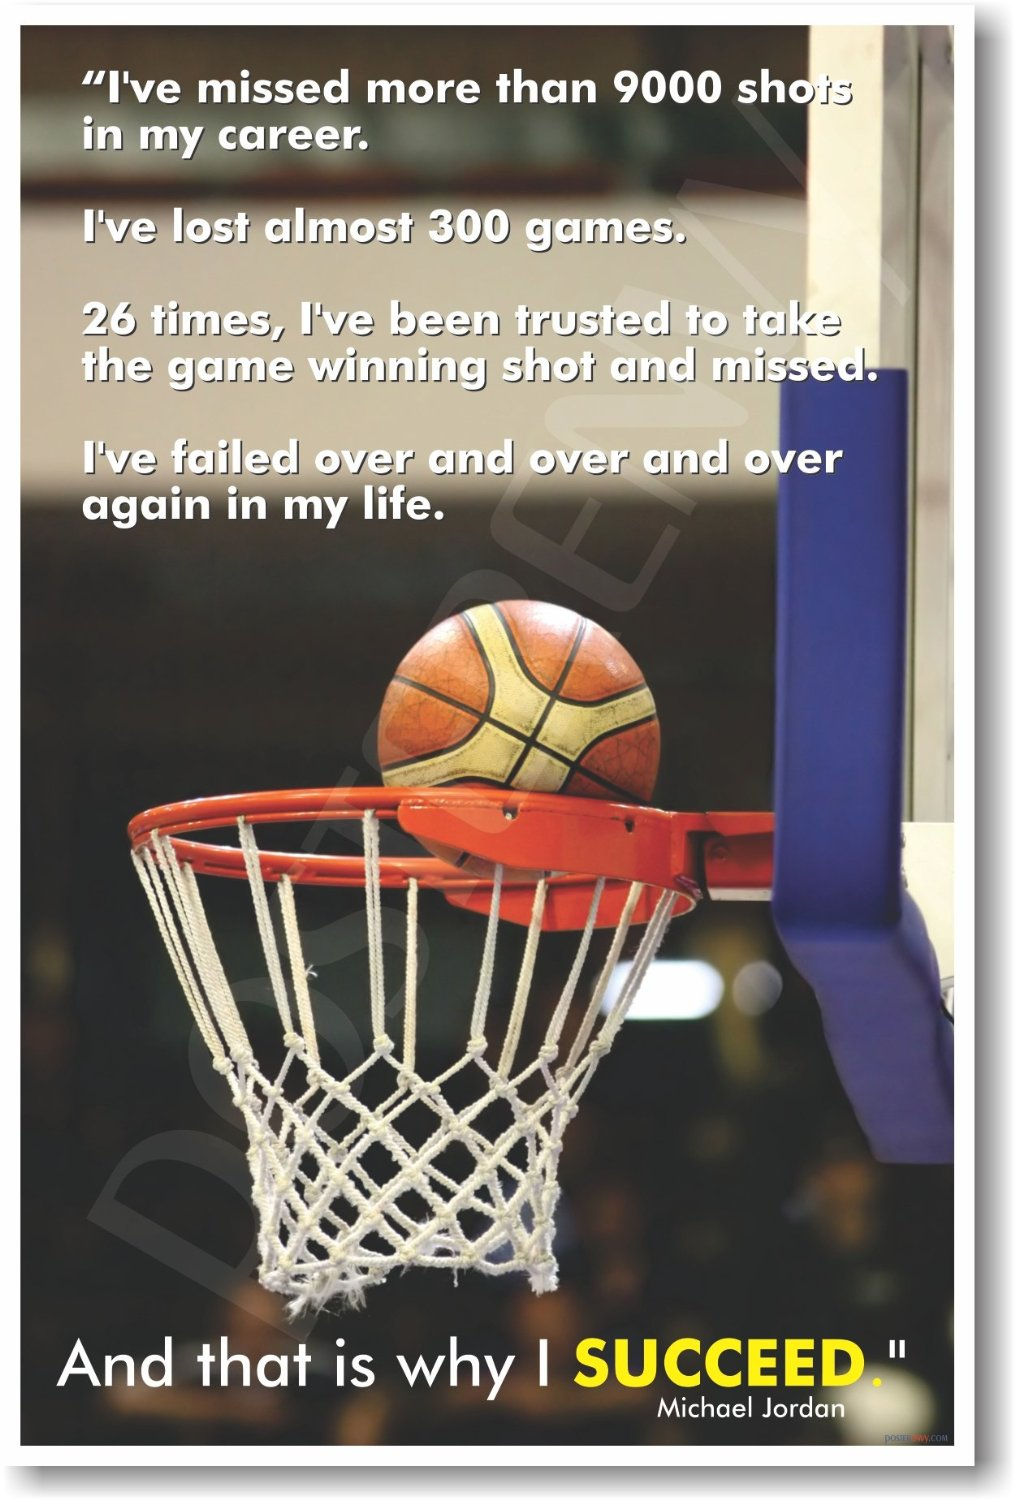 """Michael Jordan """"That Is Why I Succeed"""" - Classroom Motivational Poster"""